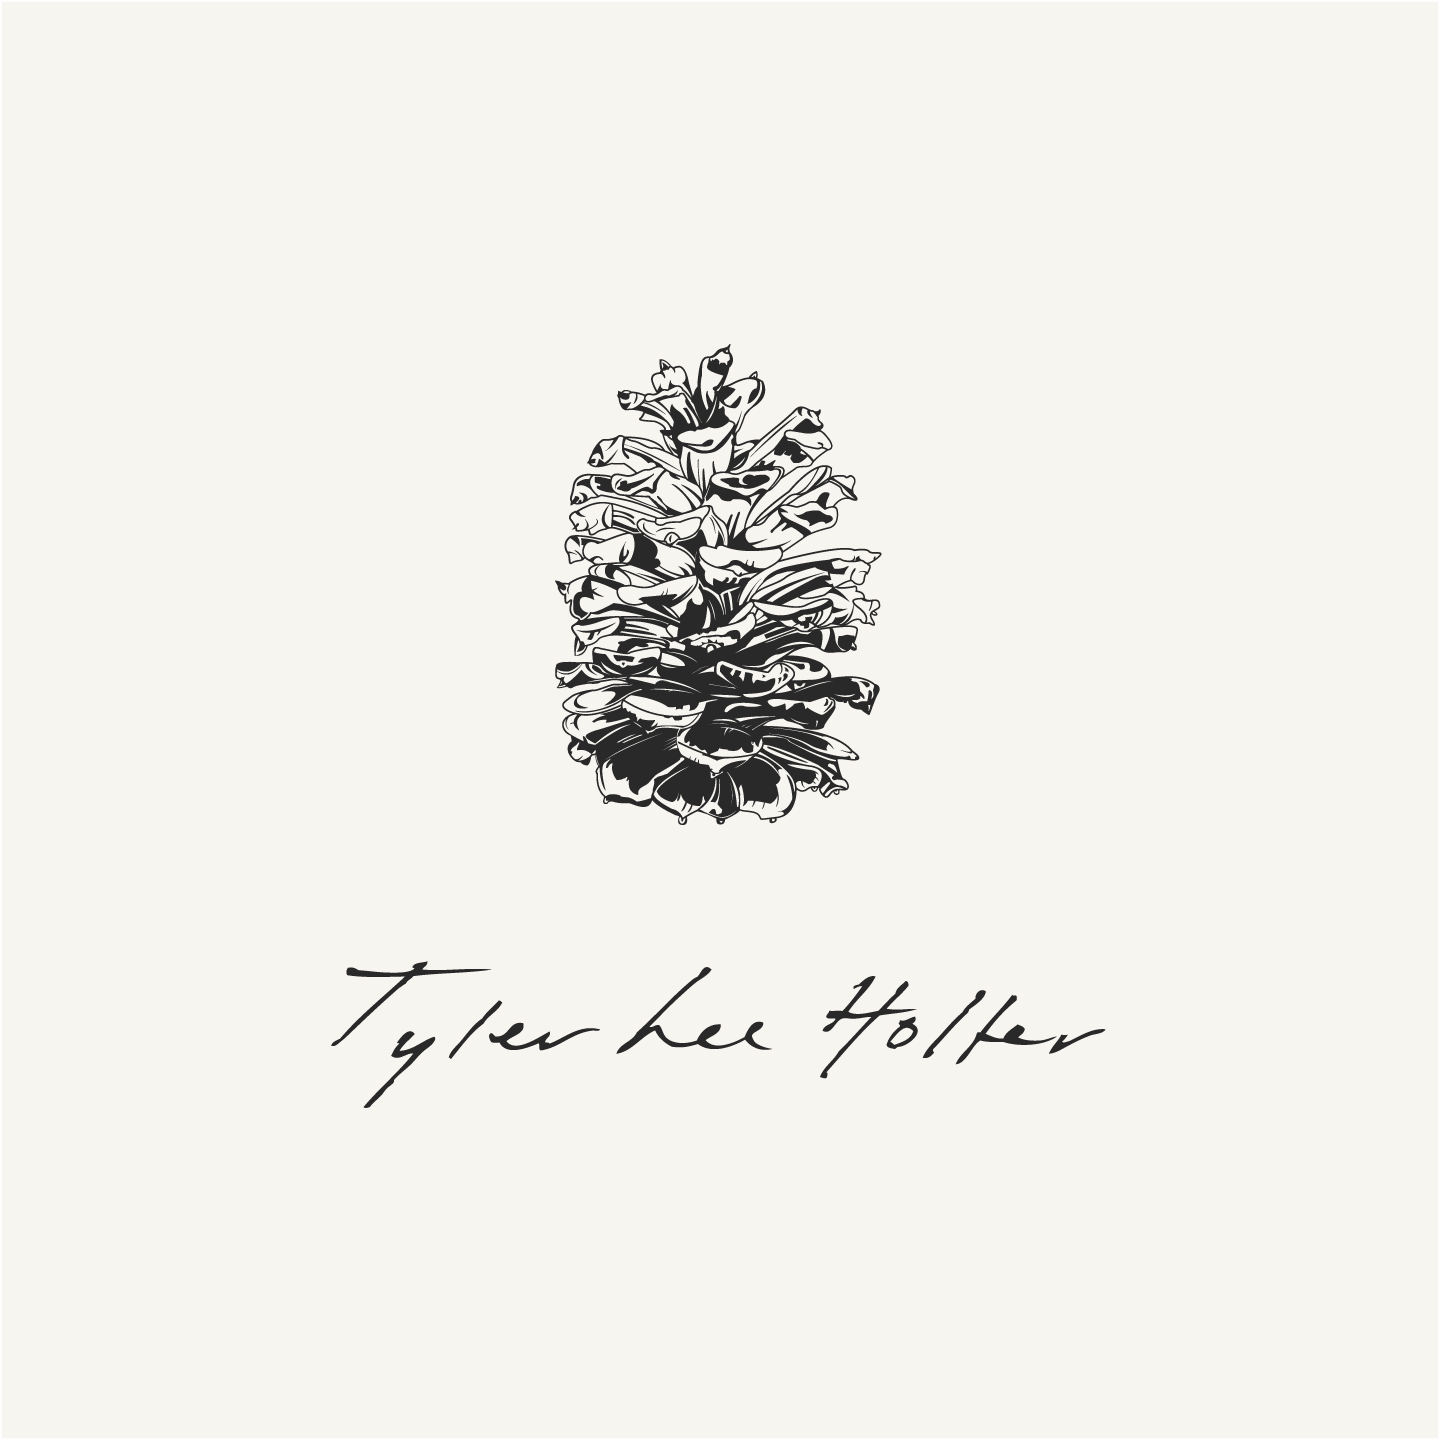 Tyler Lee Holter logo design by Hunter Oden of oden.house